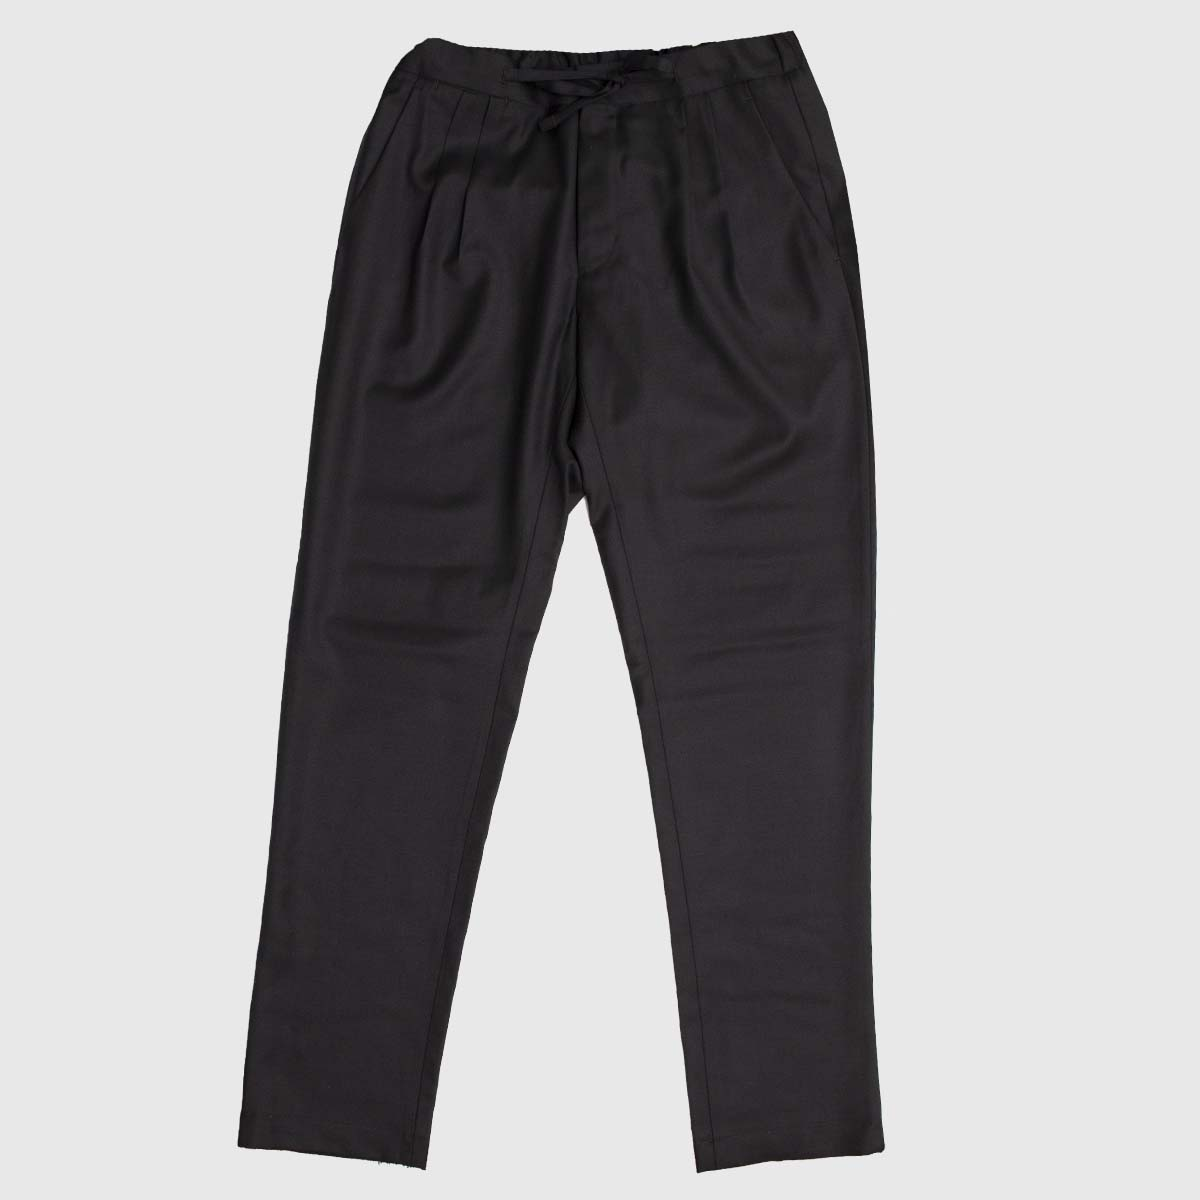 Black Wool Double pleats drawstring trousers